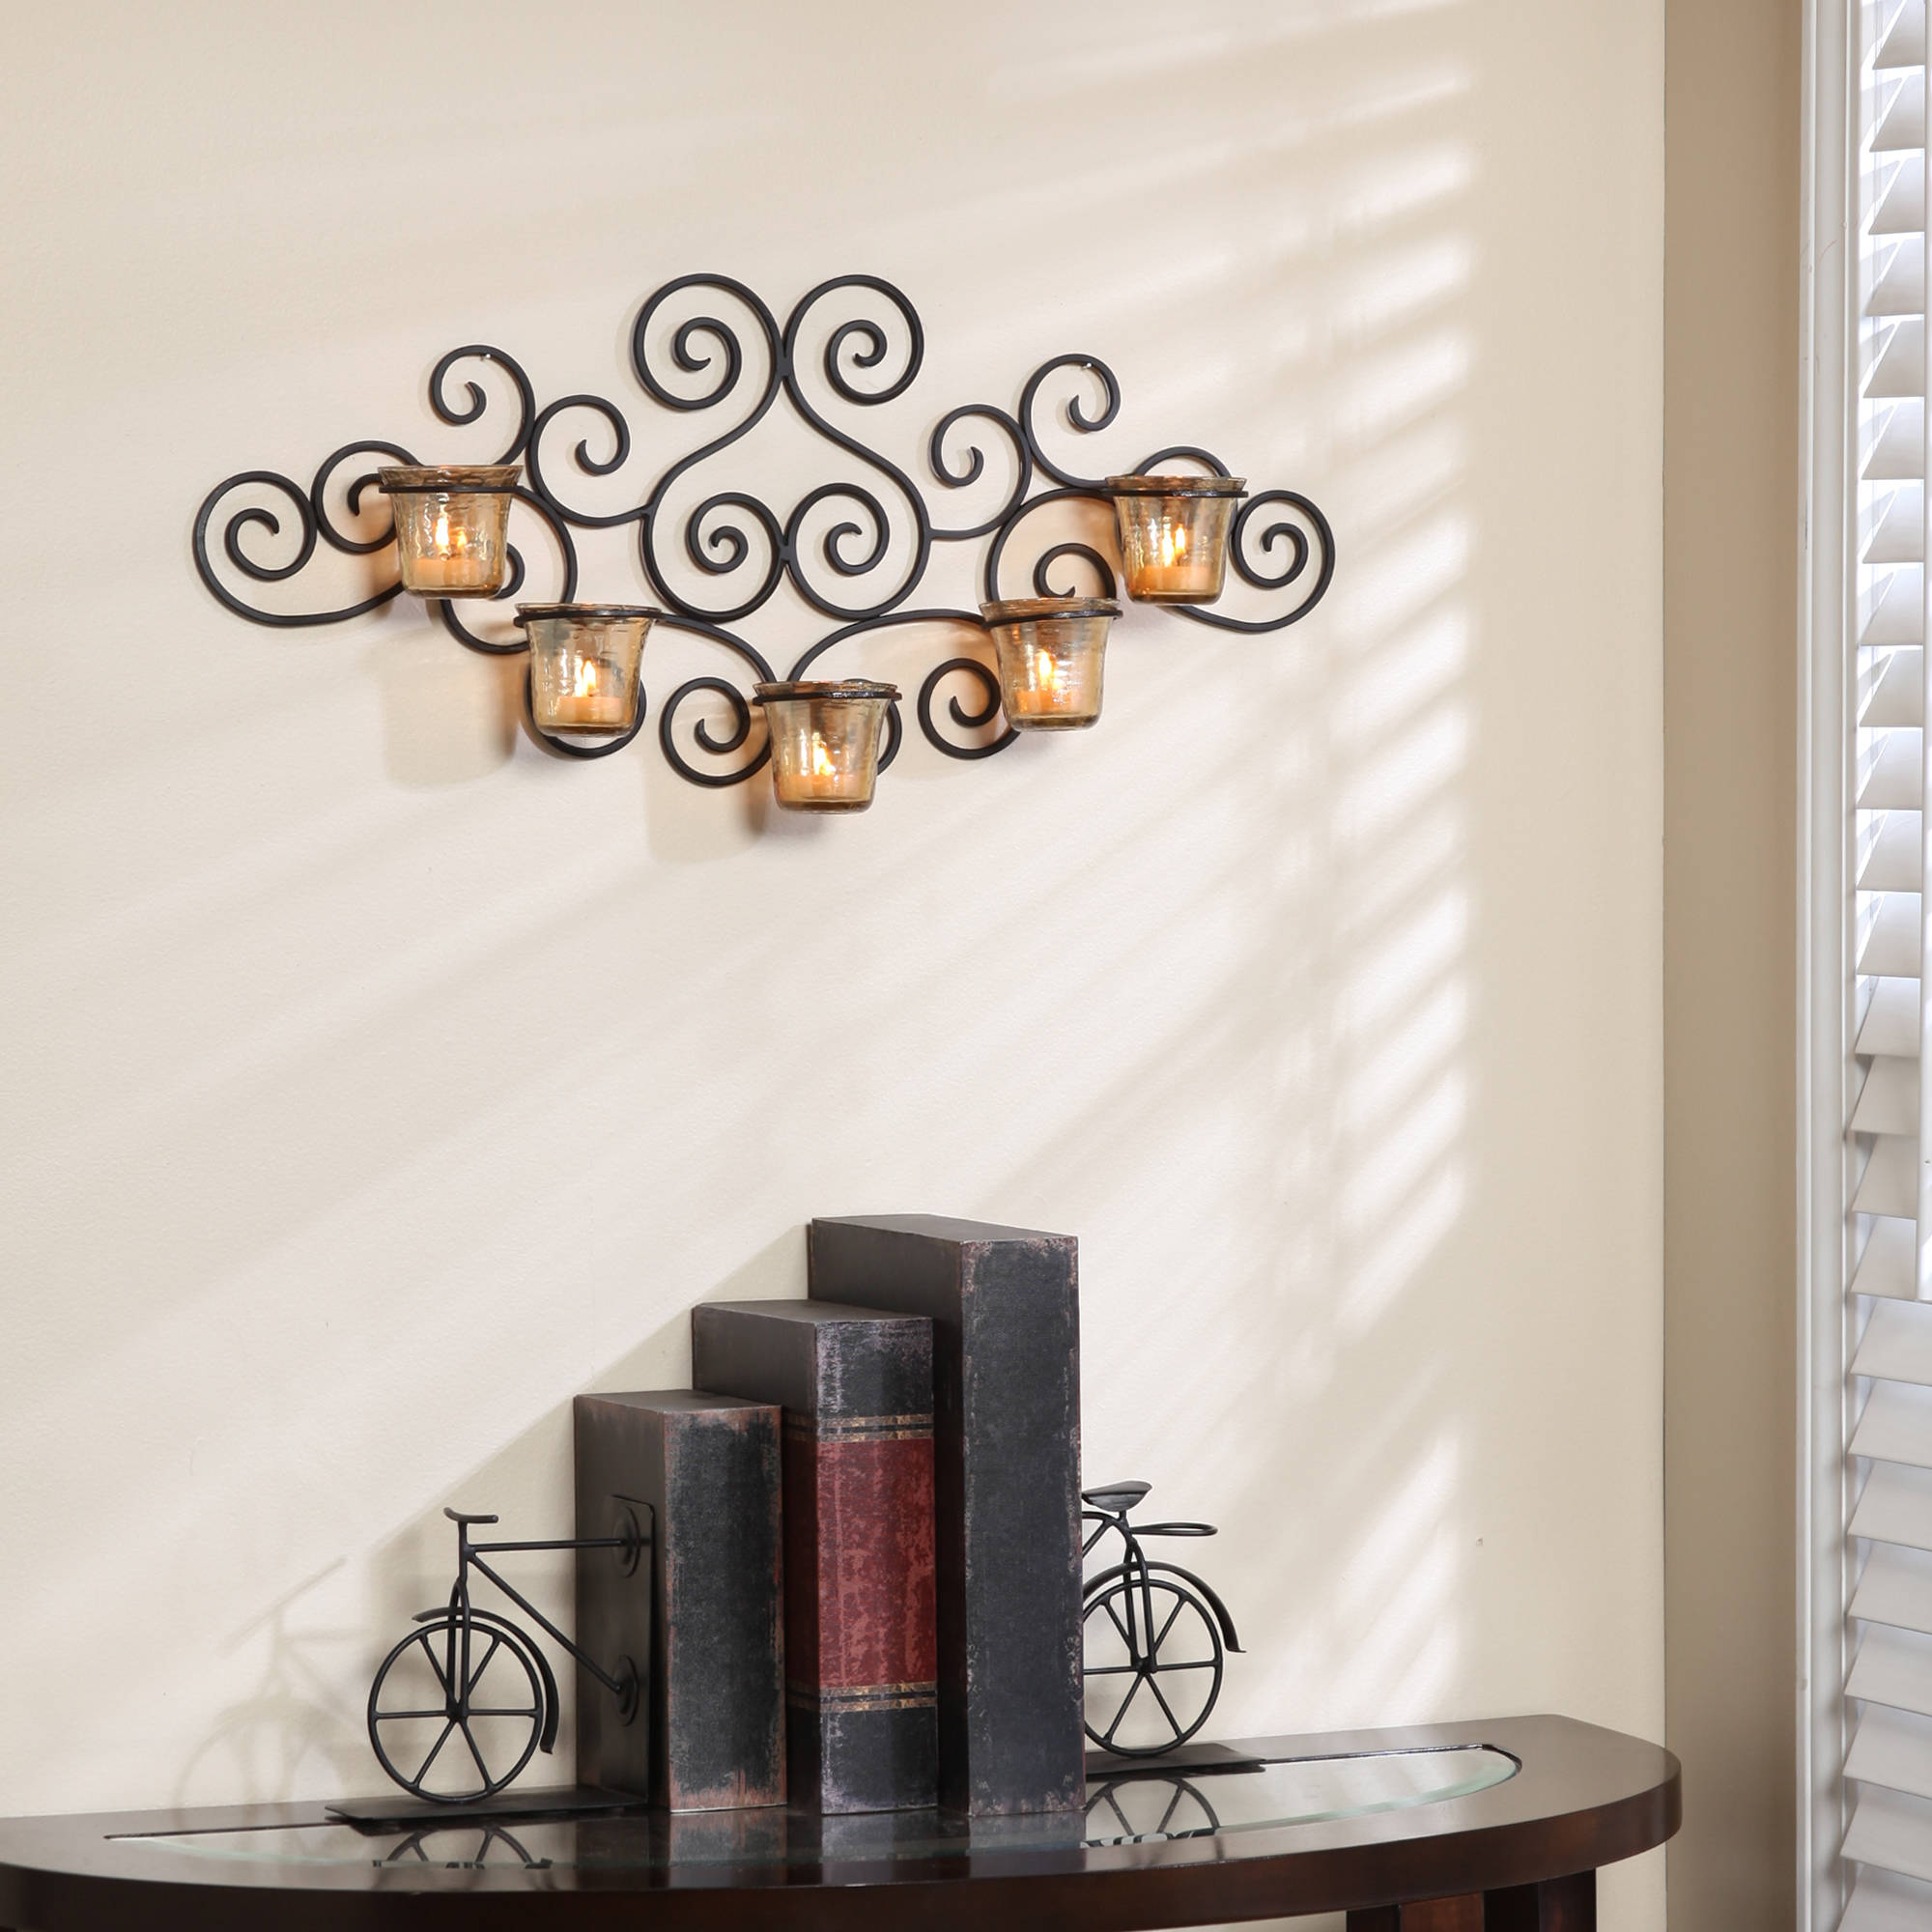 Click here to buy Better Homes and Gardens Ornate Scrollwork Candle Wall Sconce.